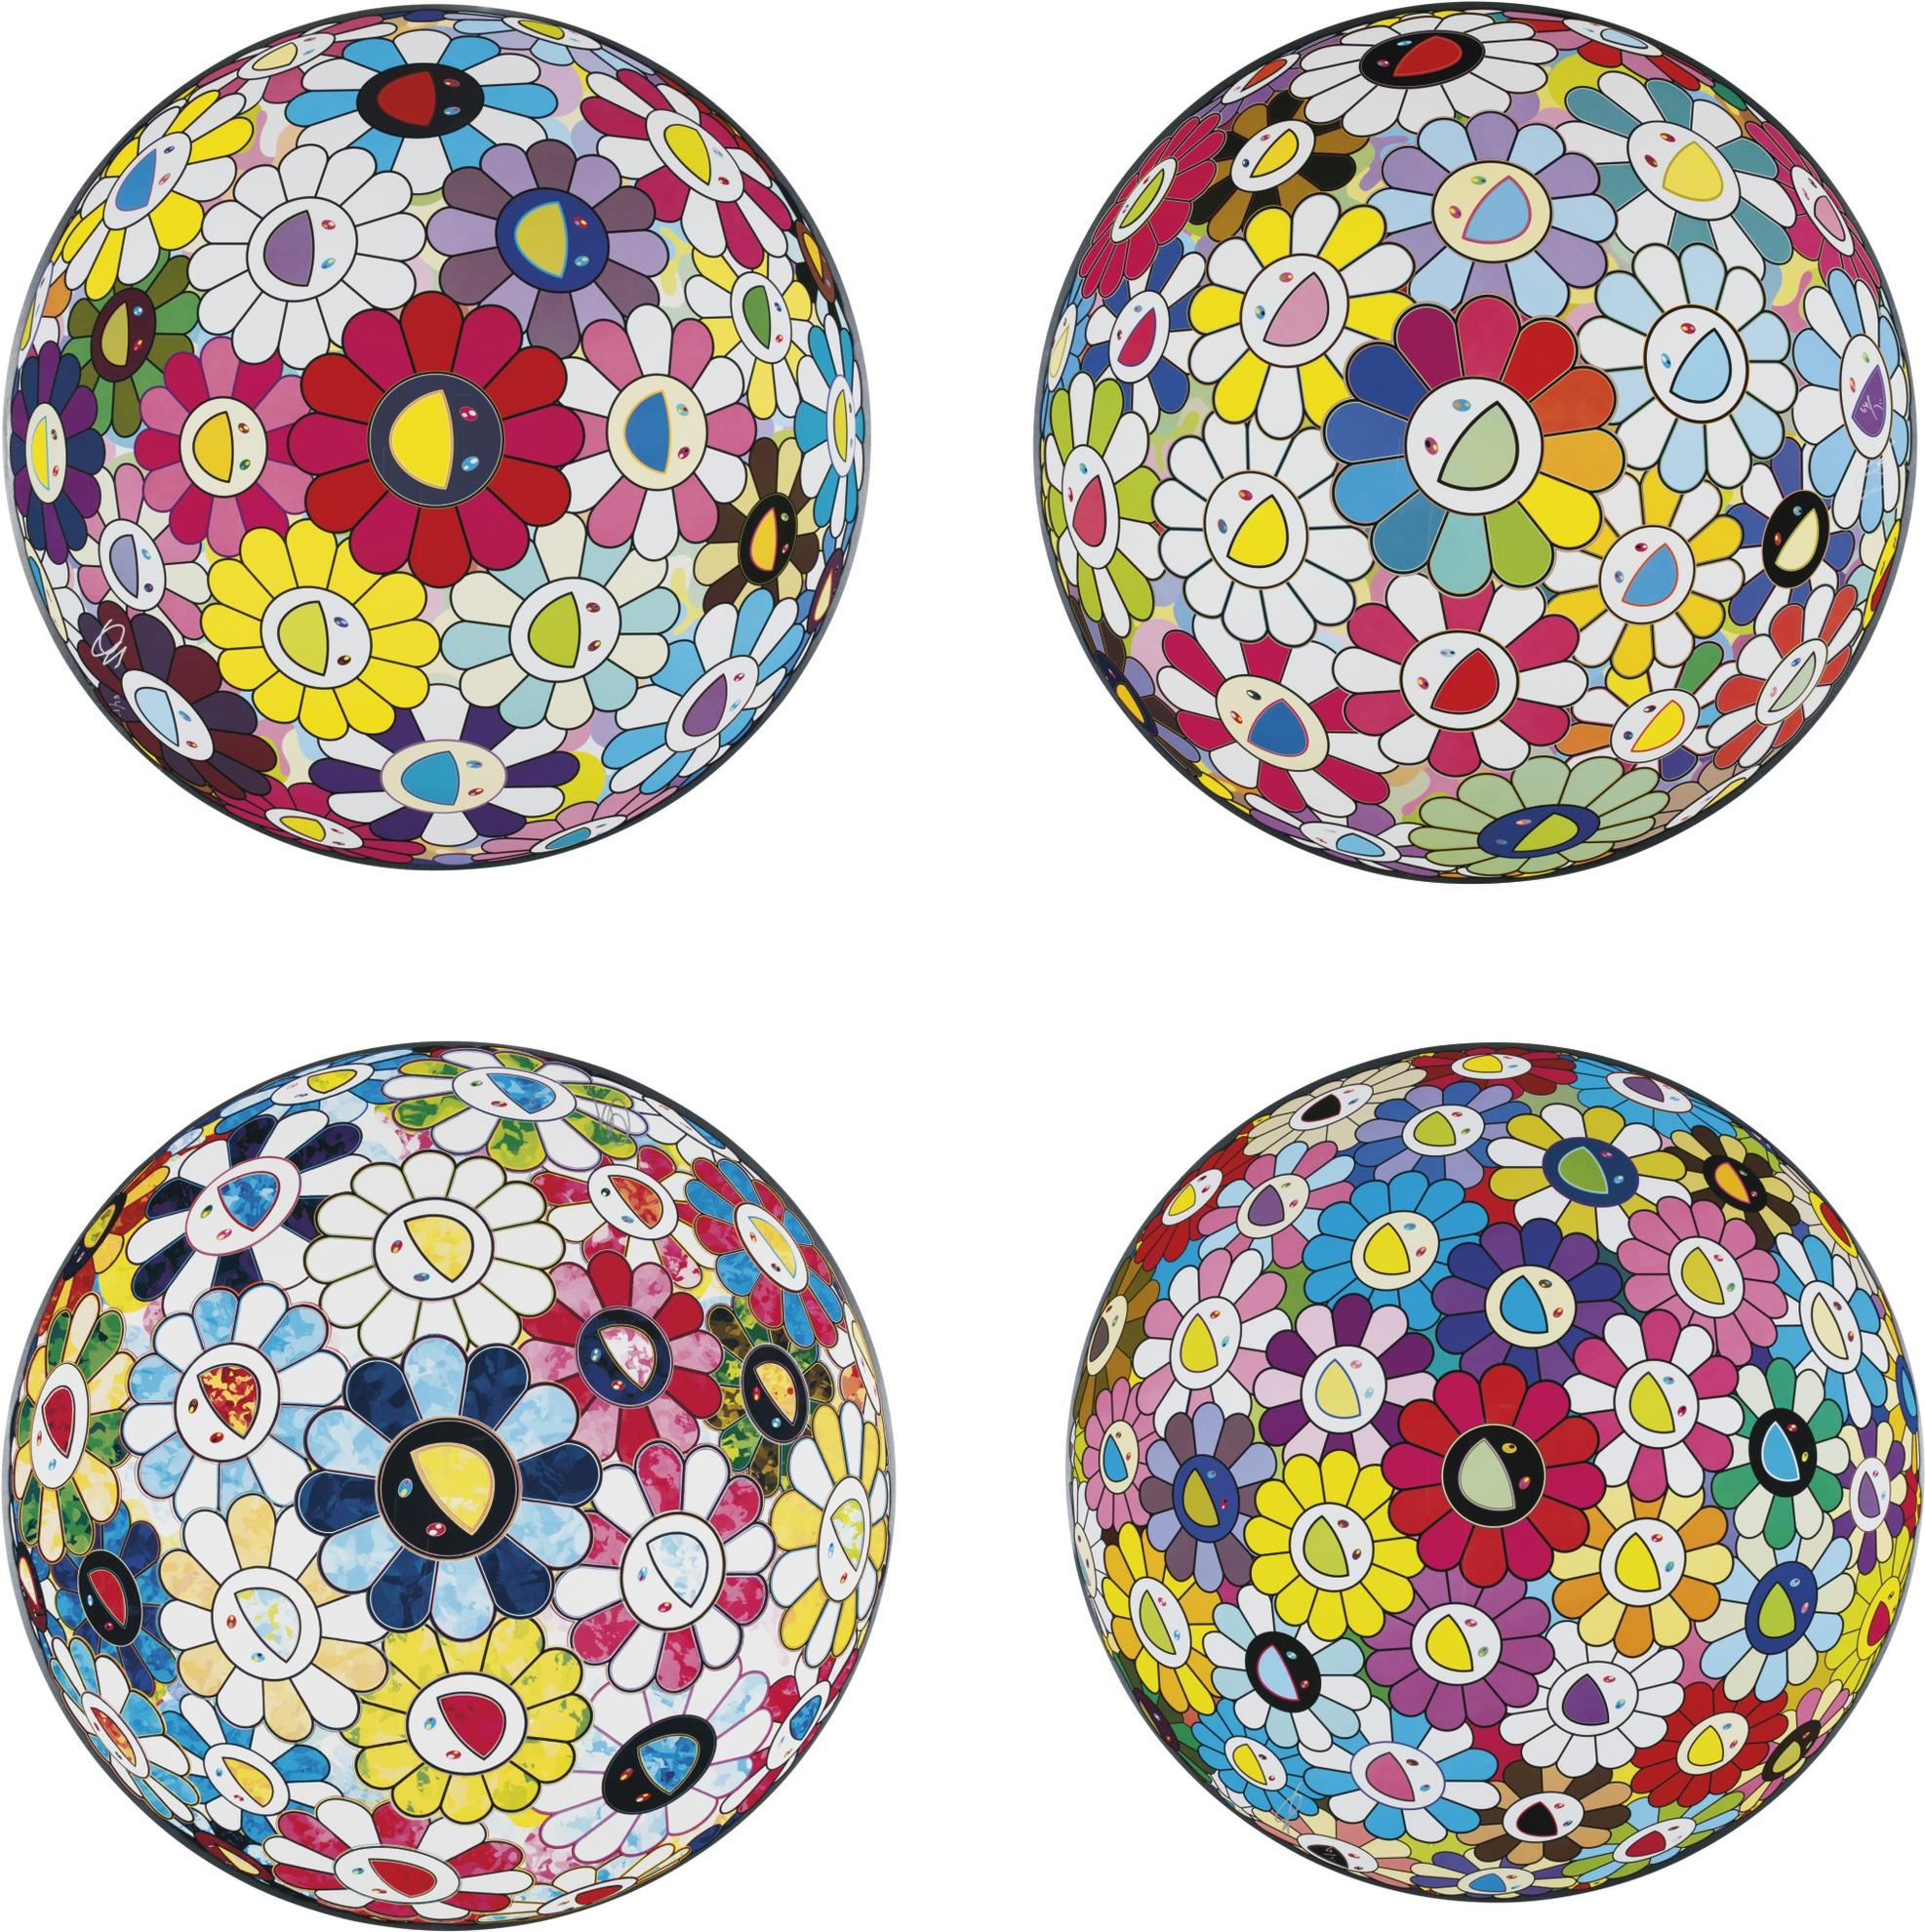 Takashi Murakami-A Collection Of Four Flowerball Prints-2015